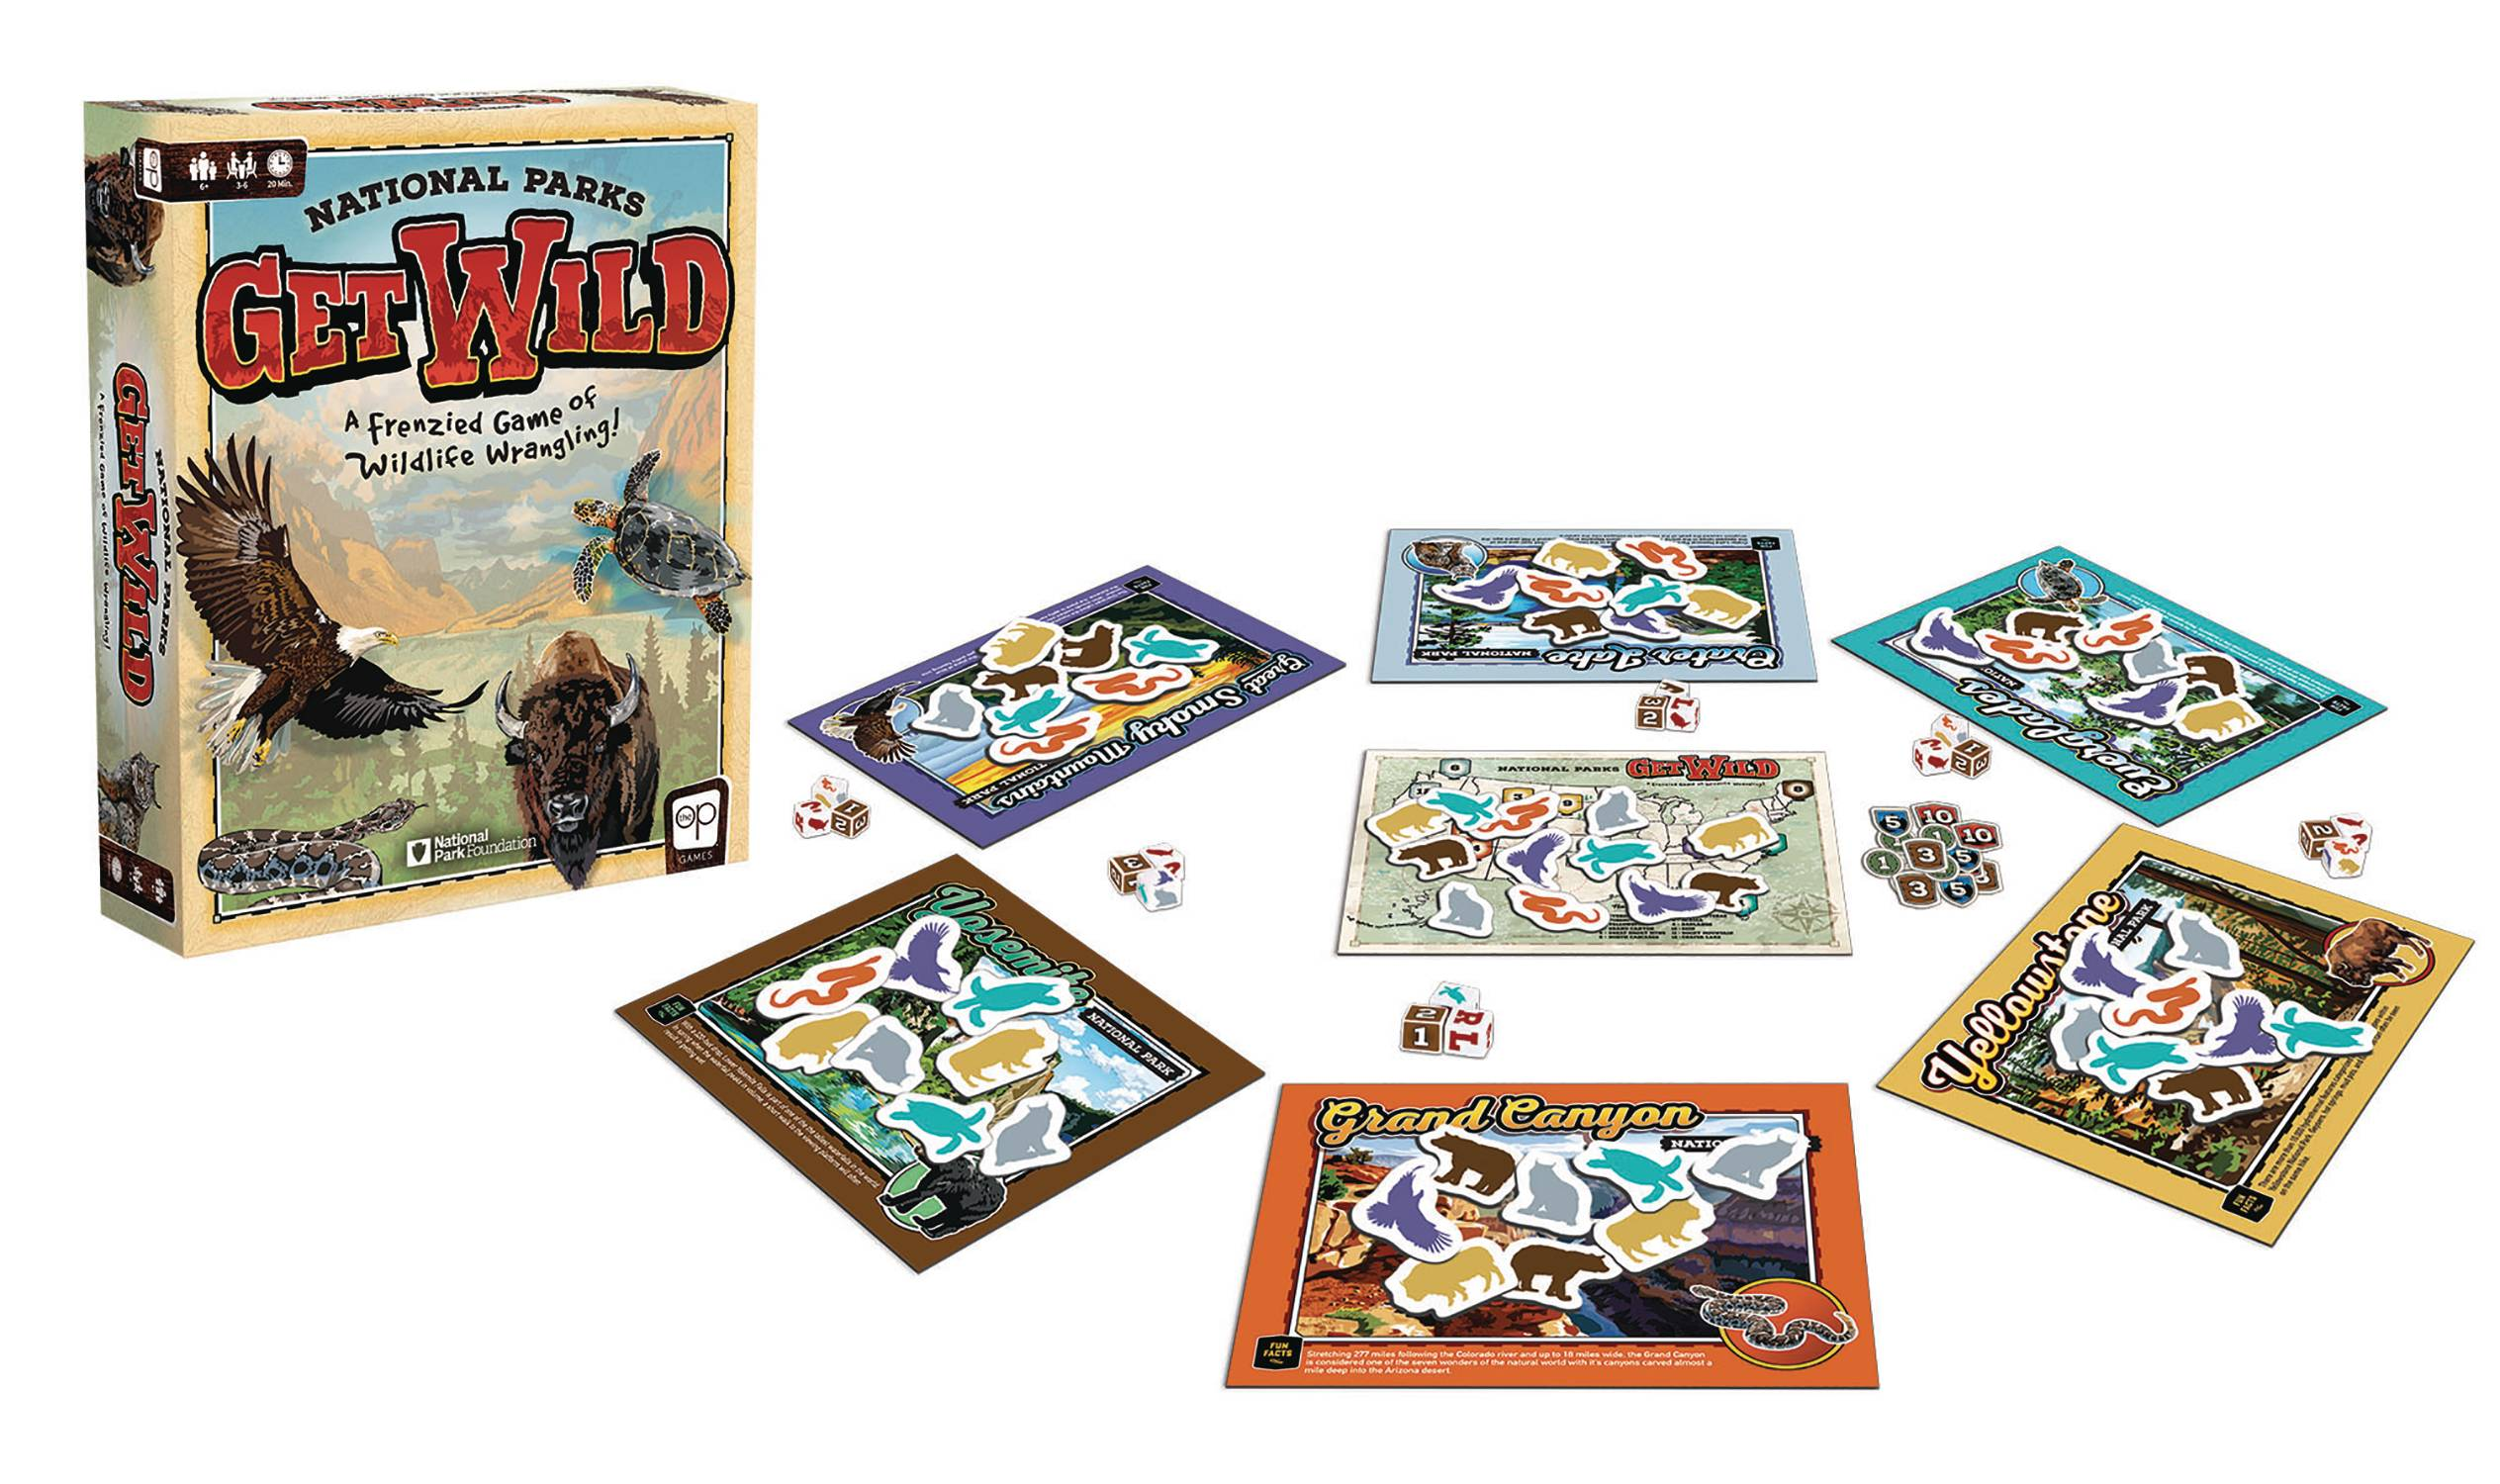 NATIONAL PARKS GET WILD BOARDGAME